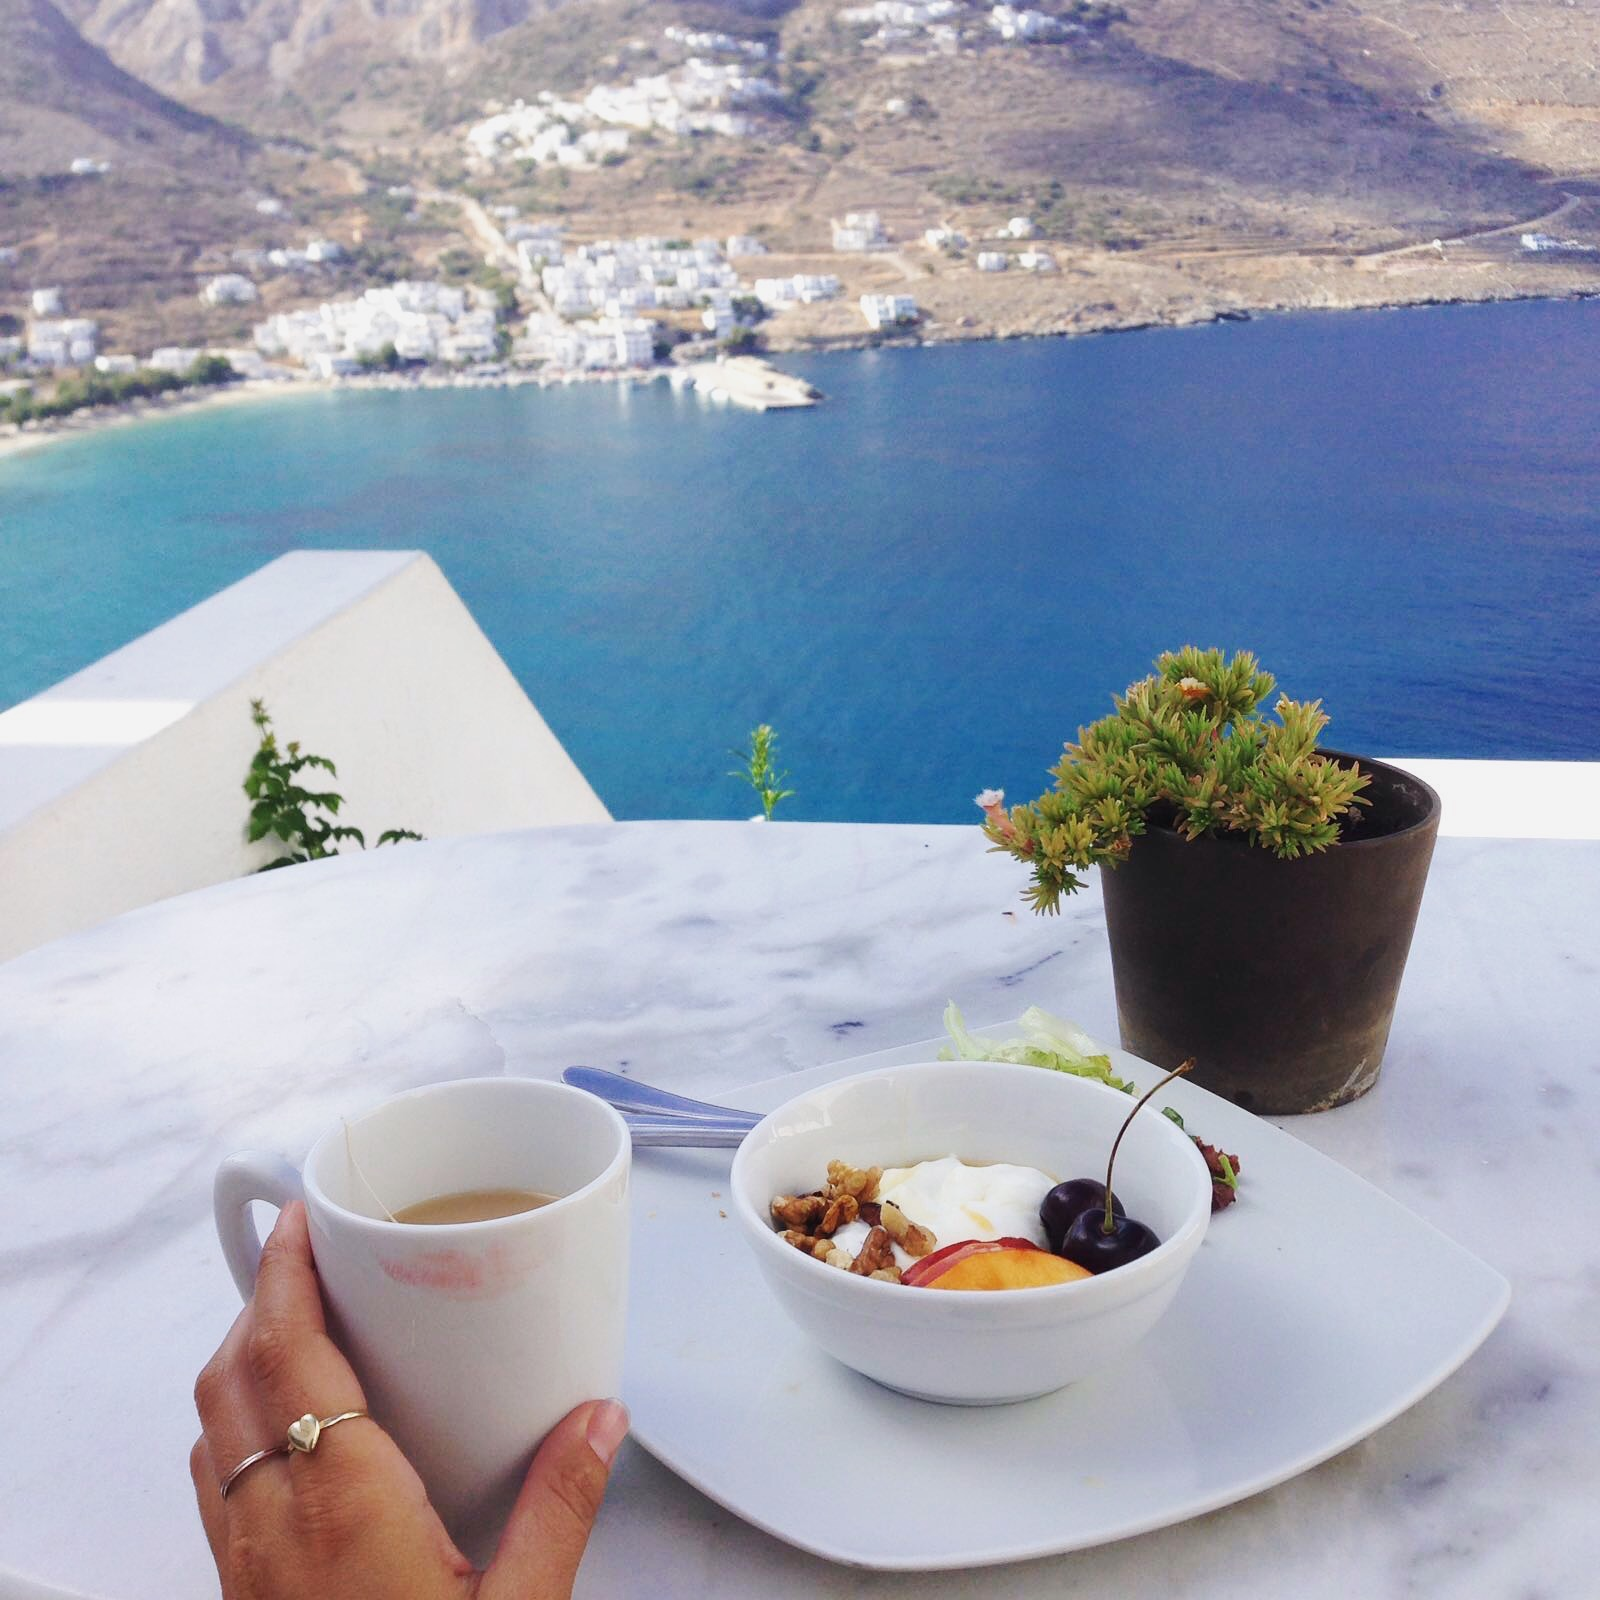 Beautiful breakfast with a view!